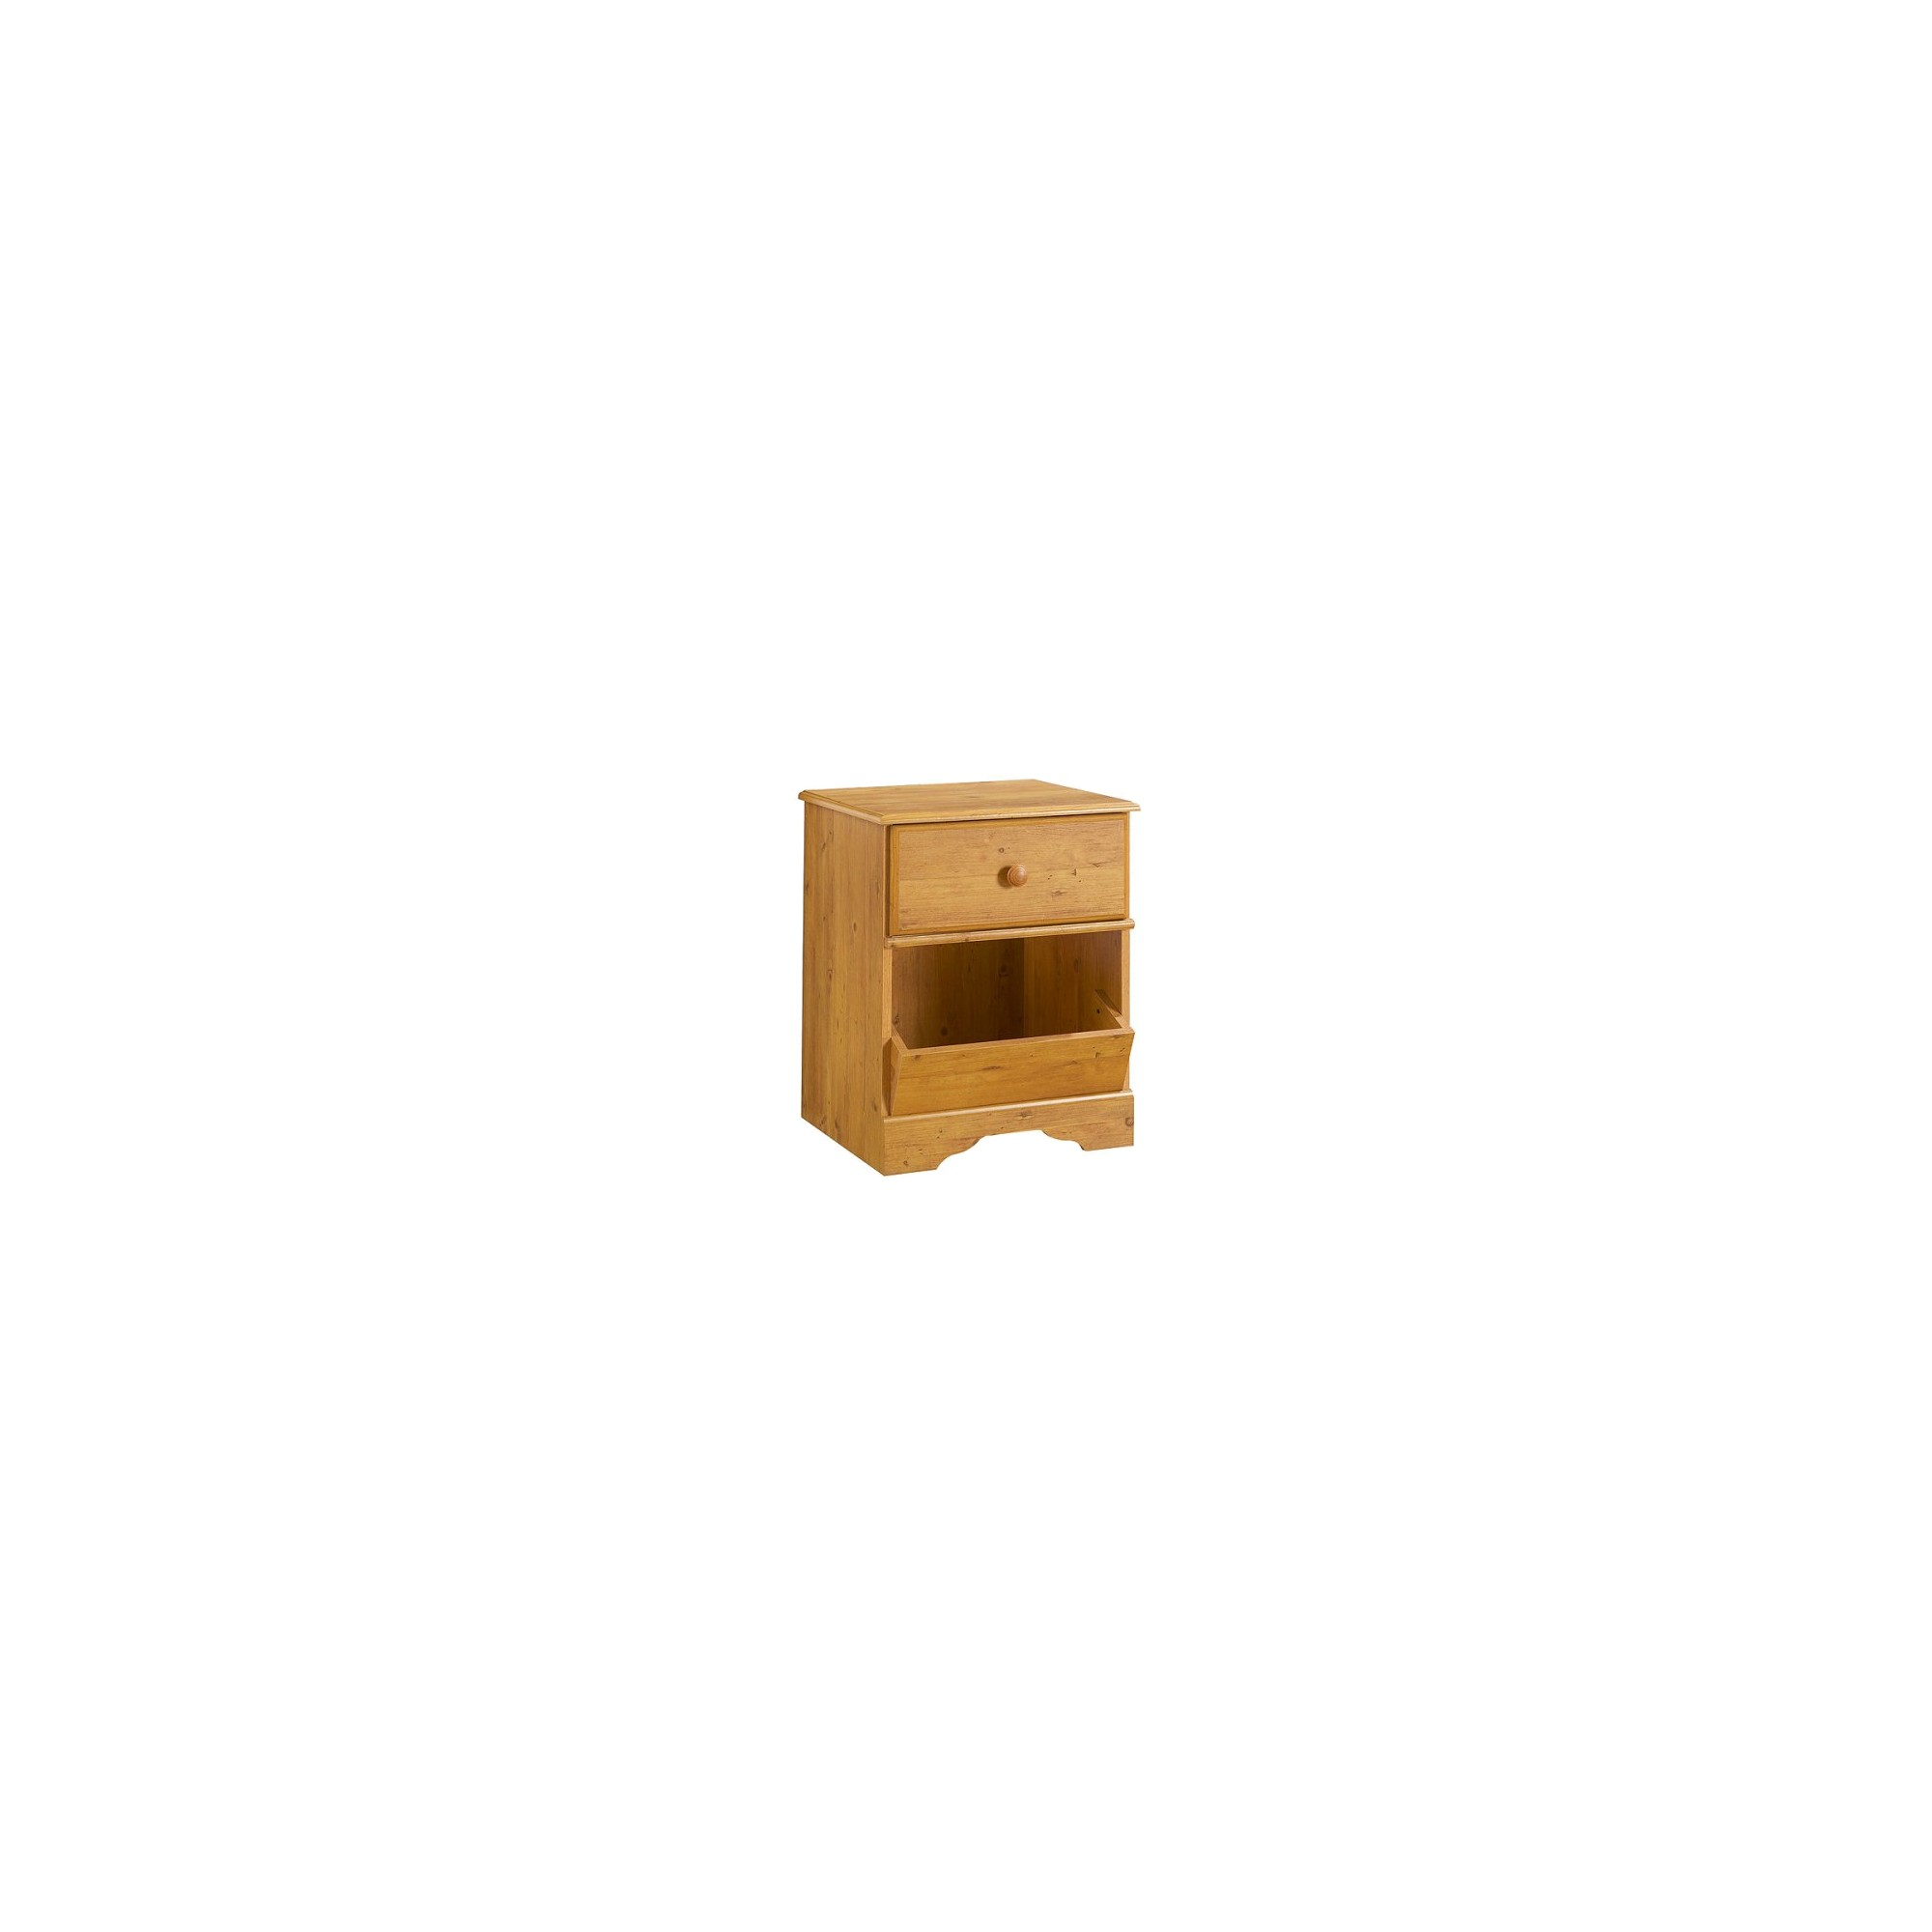 Little Treasures Nightstand Country Pine - South Shore